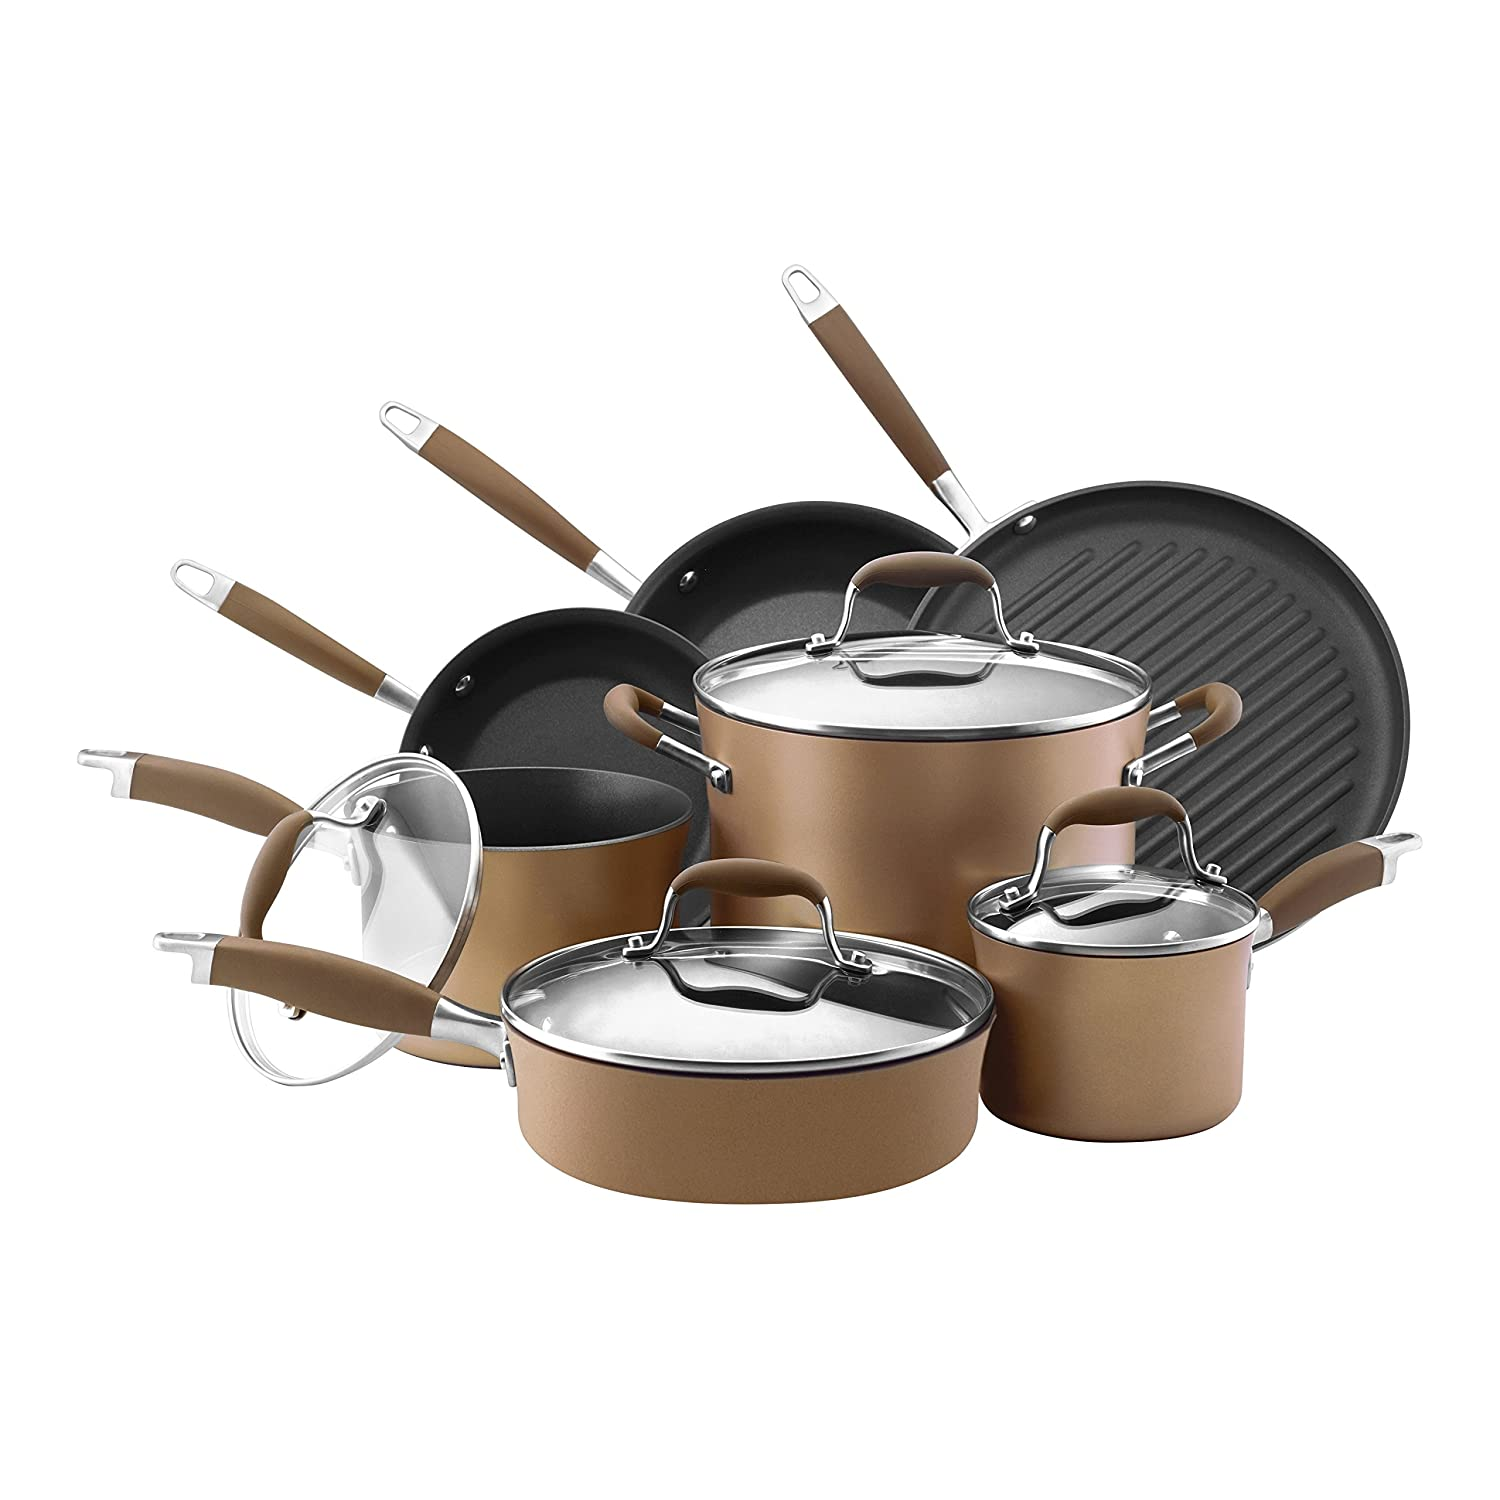 Anolon 82693 11-Piece Hard Anodized Aluminum Cookware Set